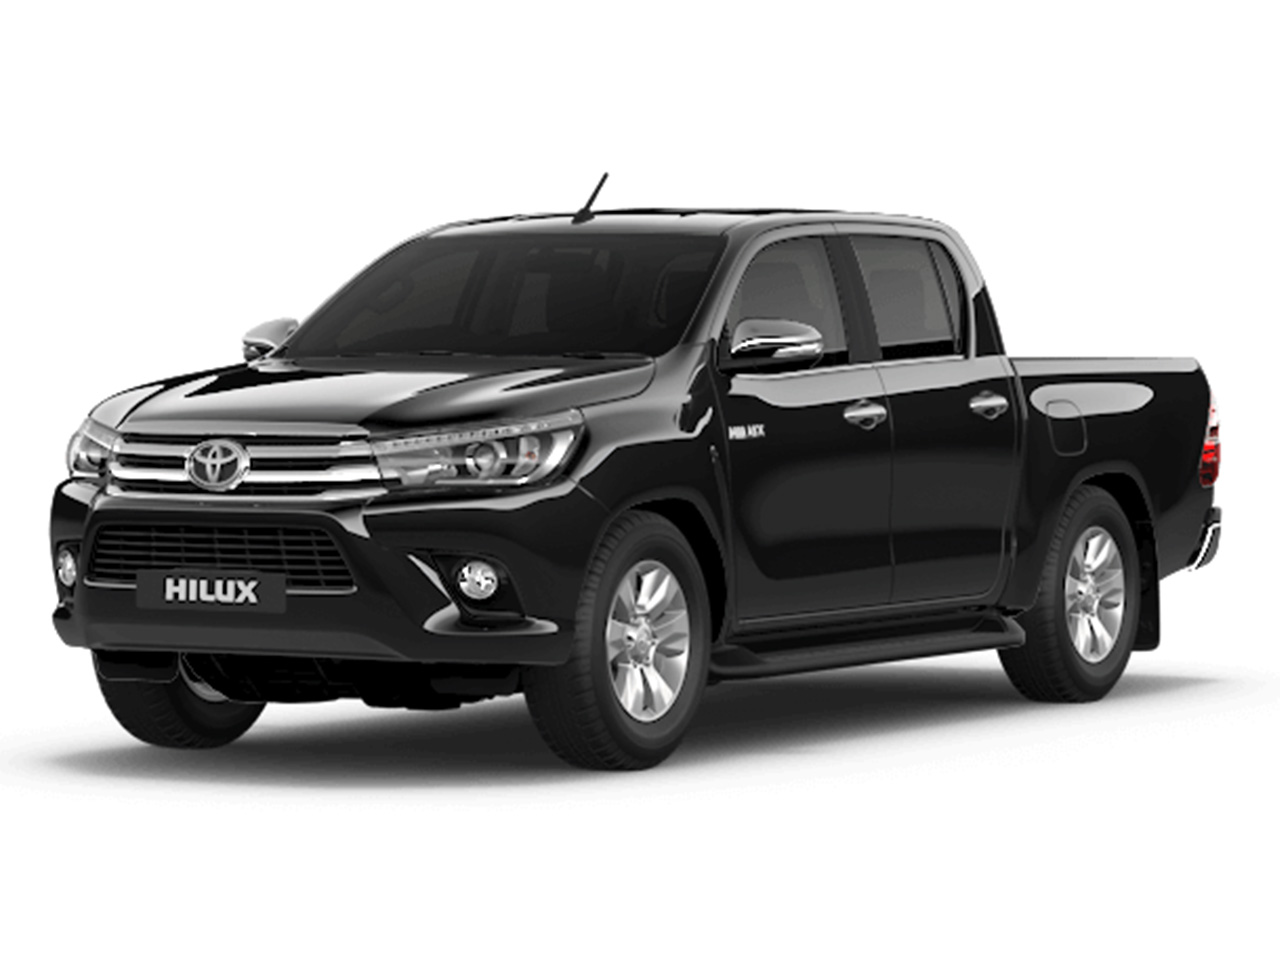 2017 toyota hilux prices in qatar gulf specs reviews. Black Bedroom Furniture Sets. Home Design Ideas